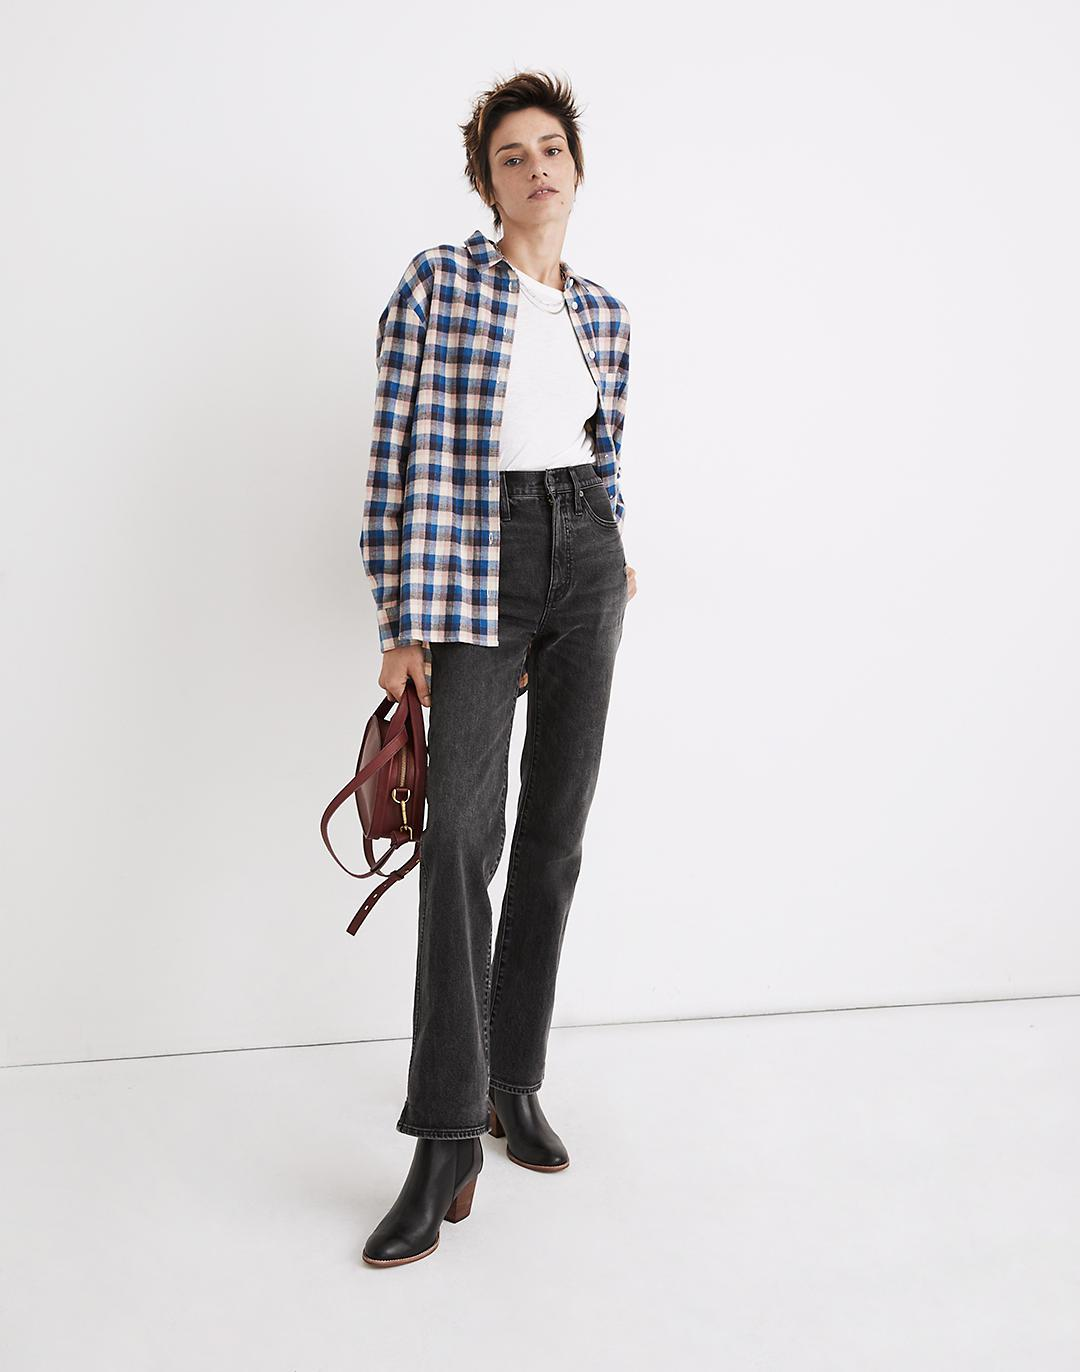 Flannel Sunday Shirt in Delgany Plaid